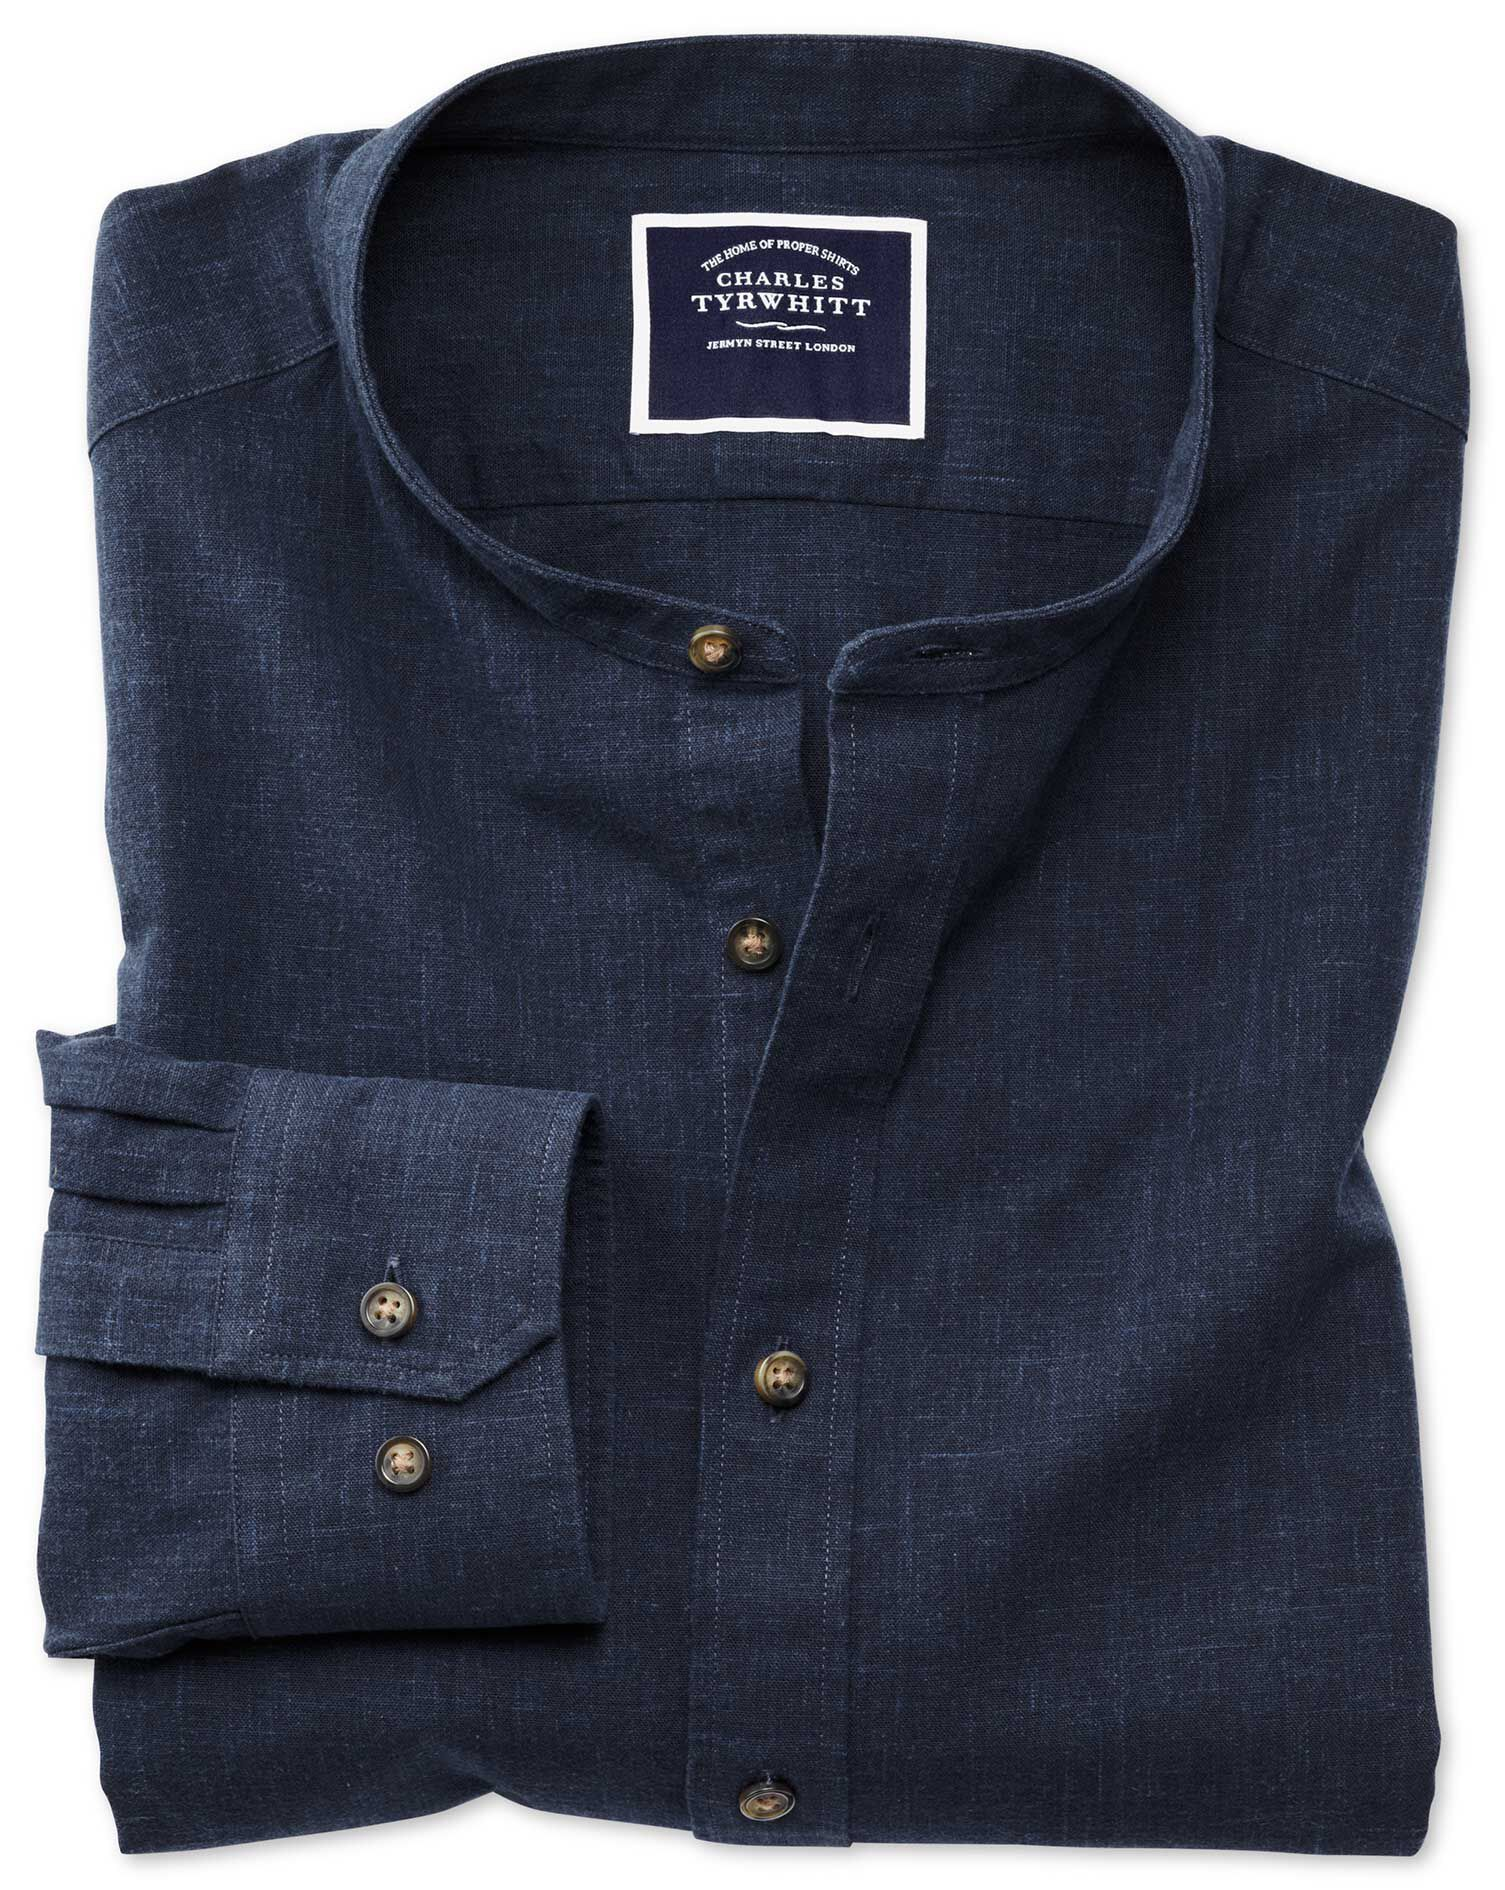 Slim Fit Collarless Navy Blue Cotton Shirt Single Cuff Size XXL by Charles Tyrwhitt